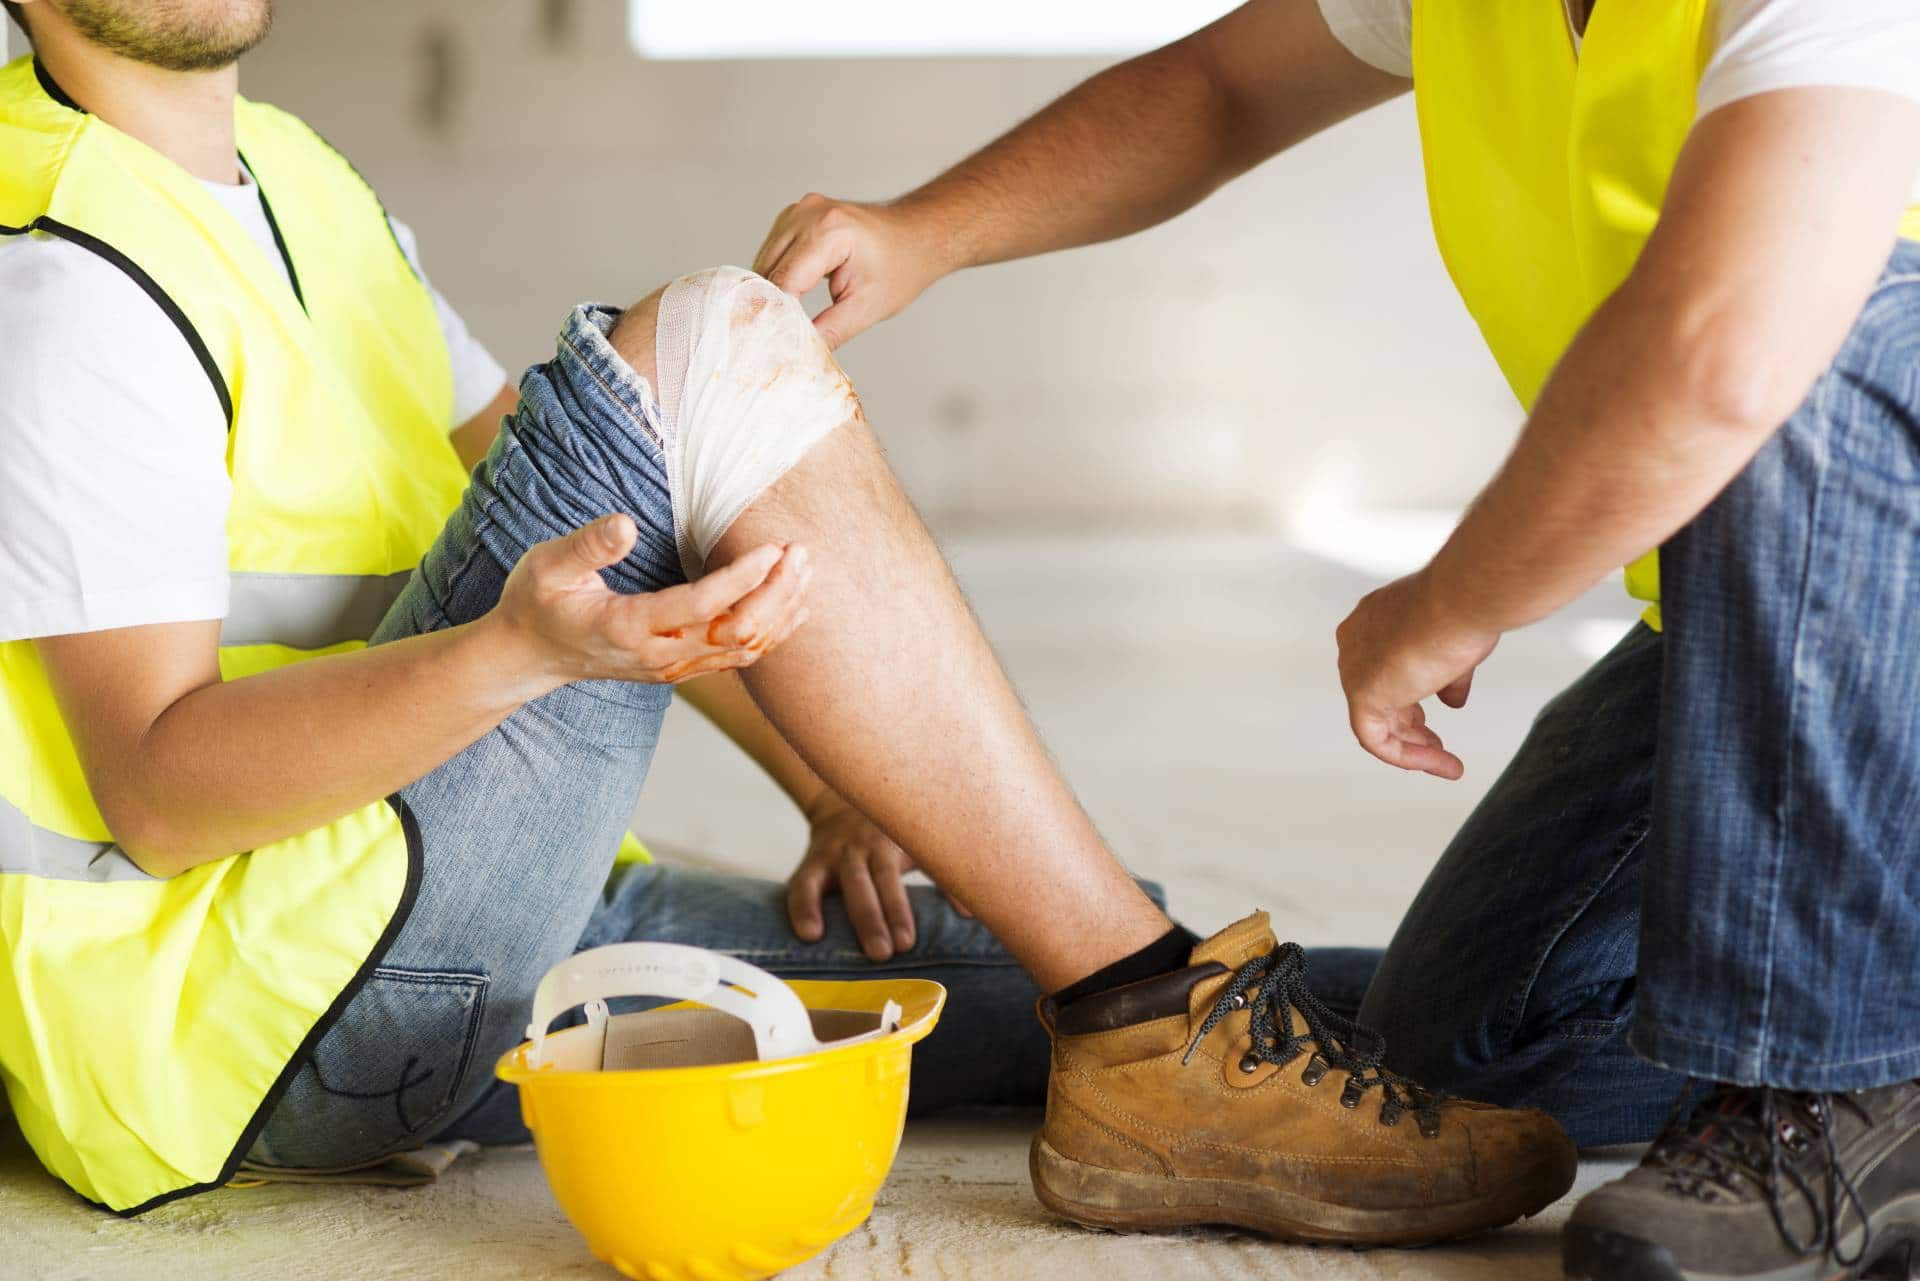 Hurt on the job? Schedule a free consultation with our personal injury lawyers at the Angell Law Firm in Atlantic Station.